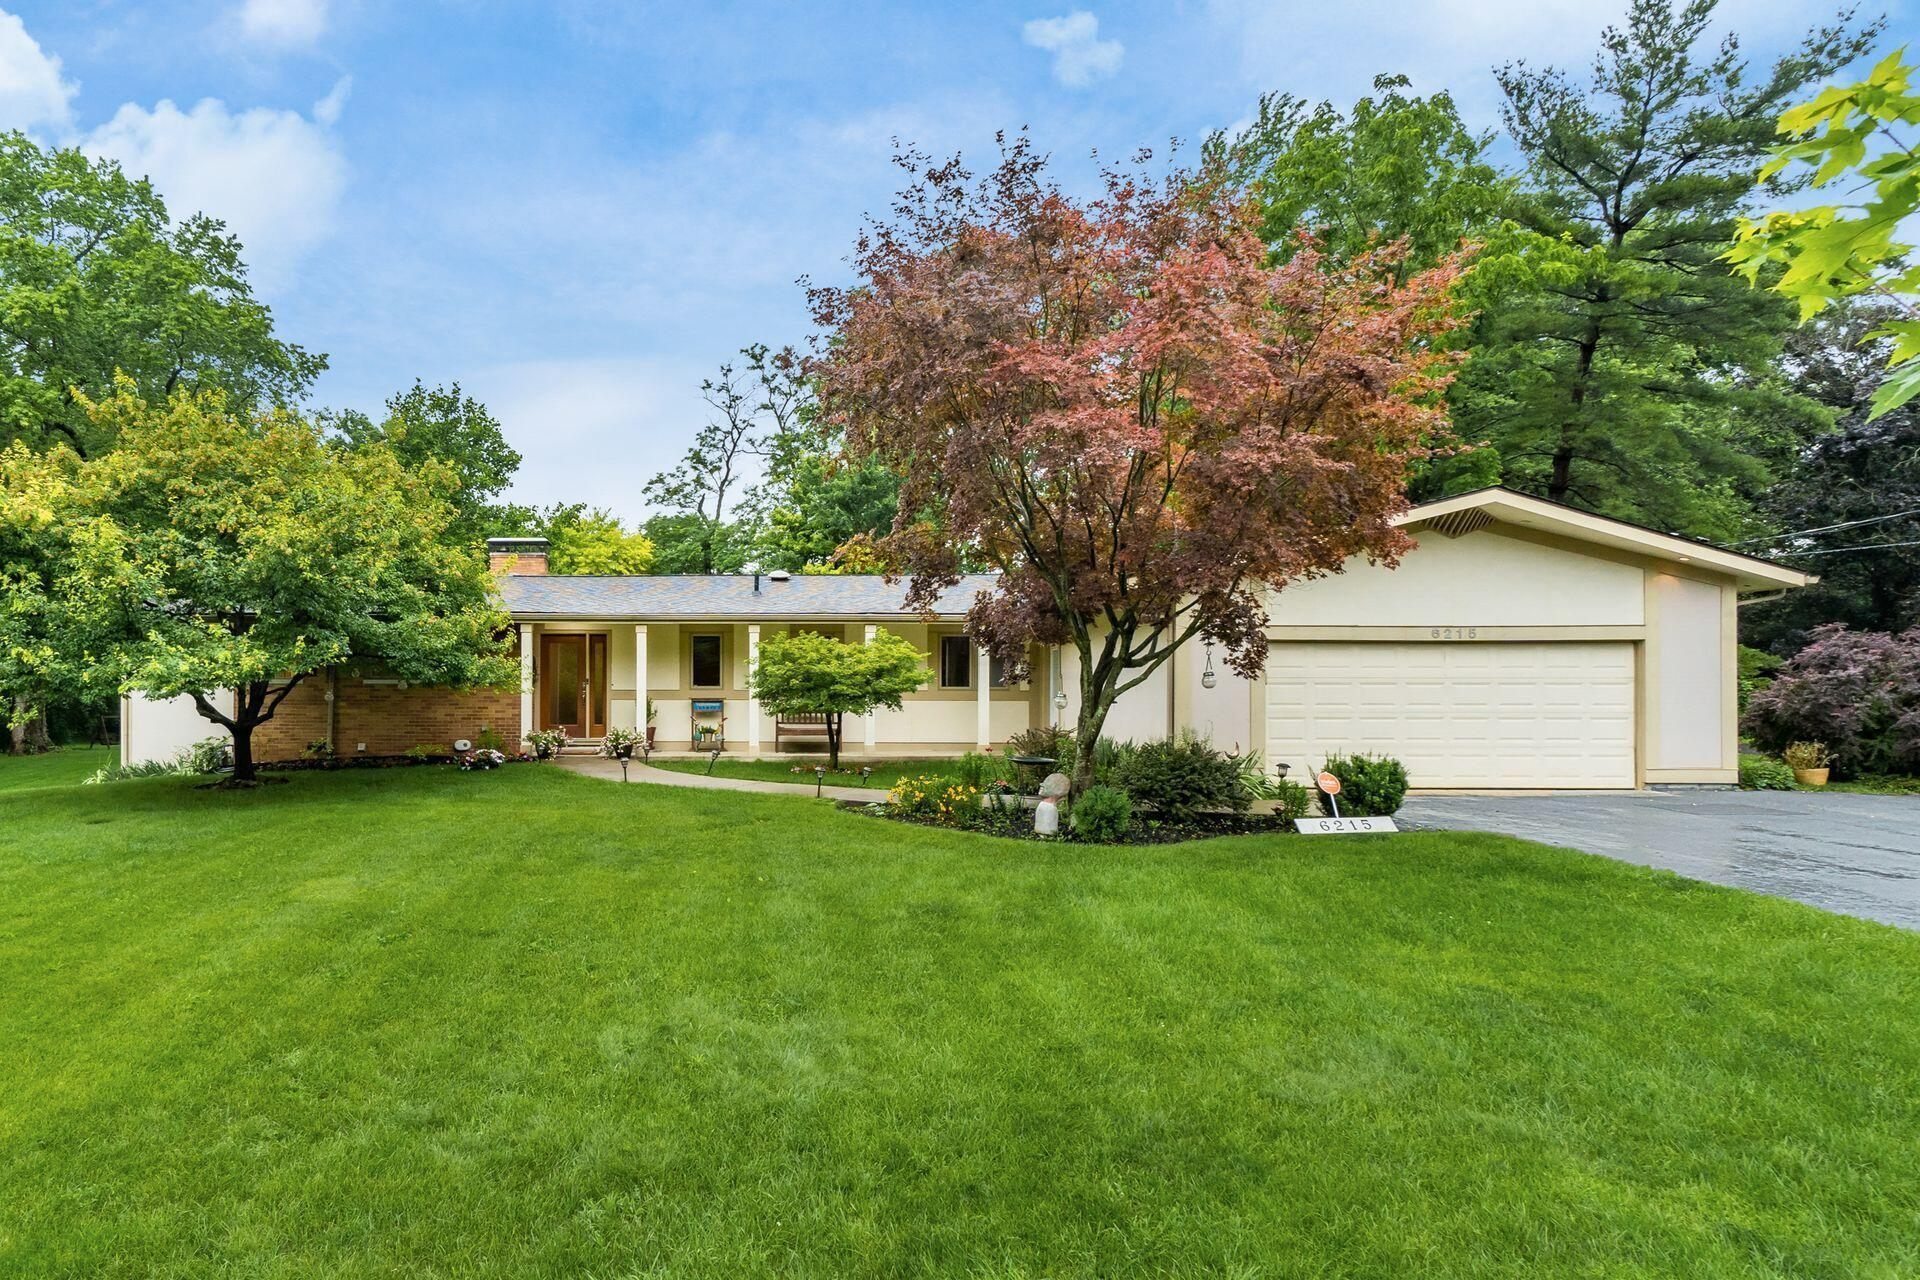 Photo of 6215 Olentangy River Road, Worthington, OH 43085